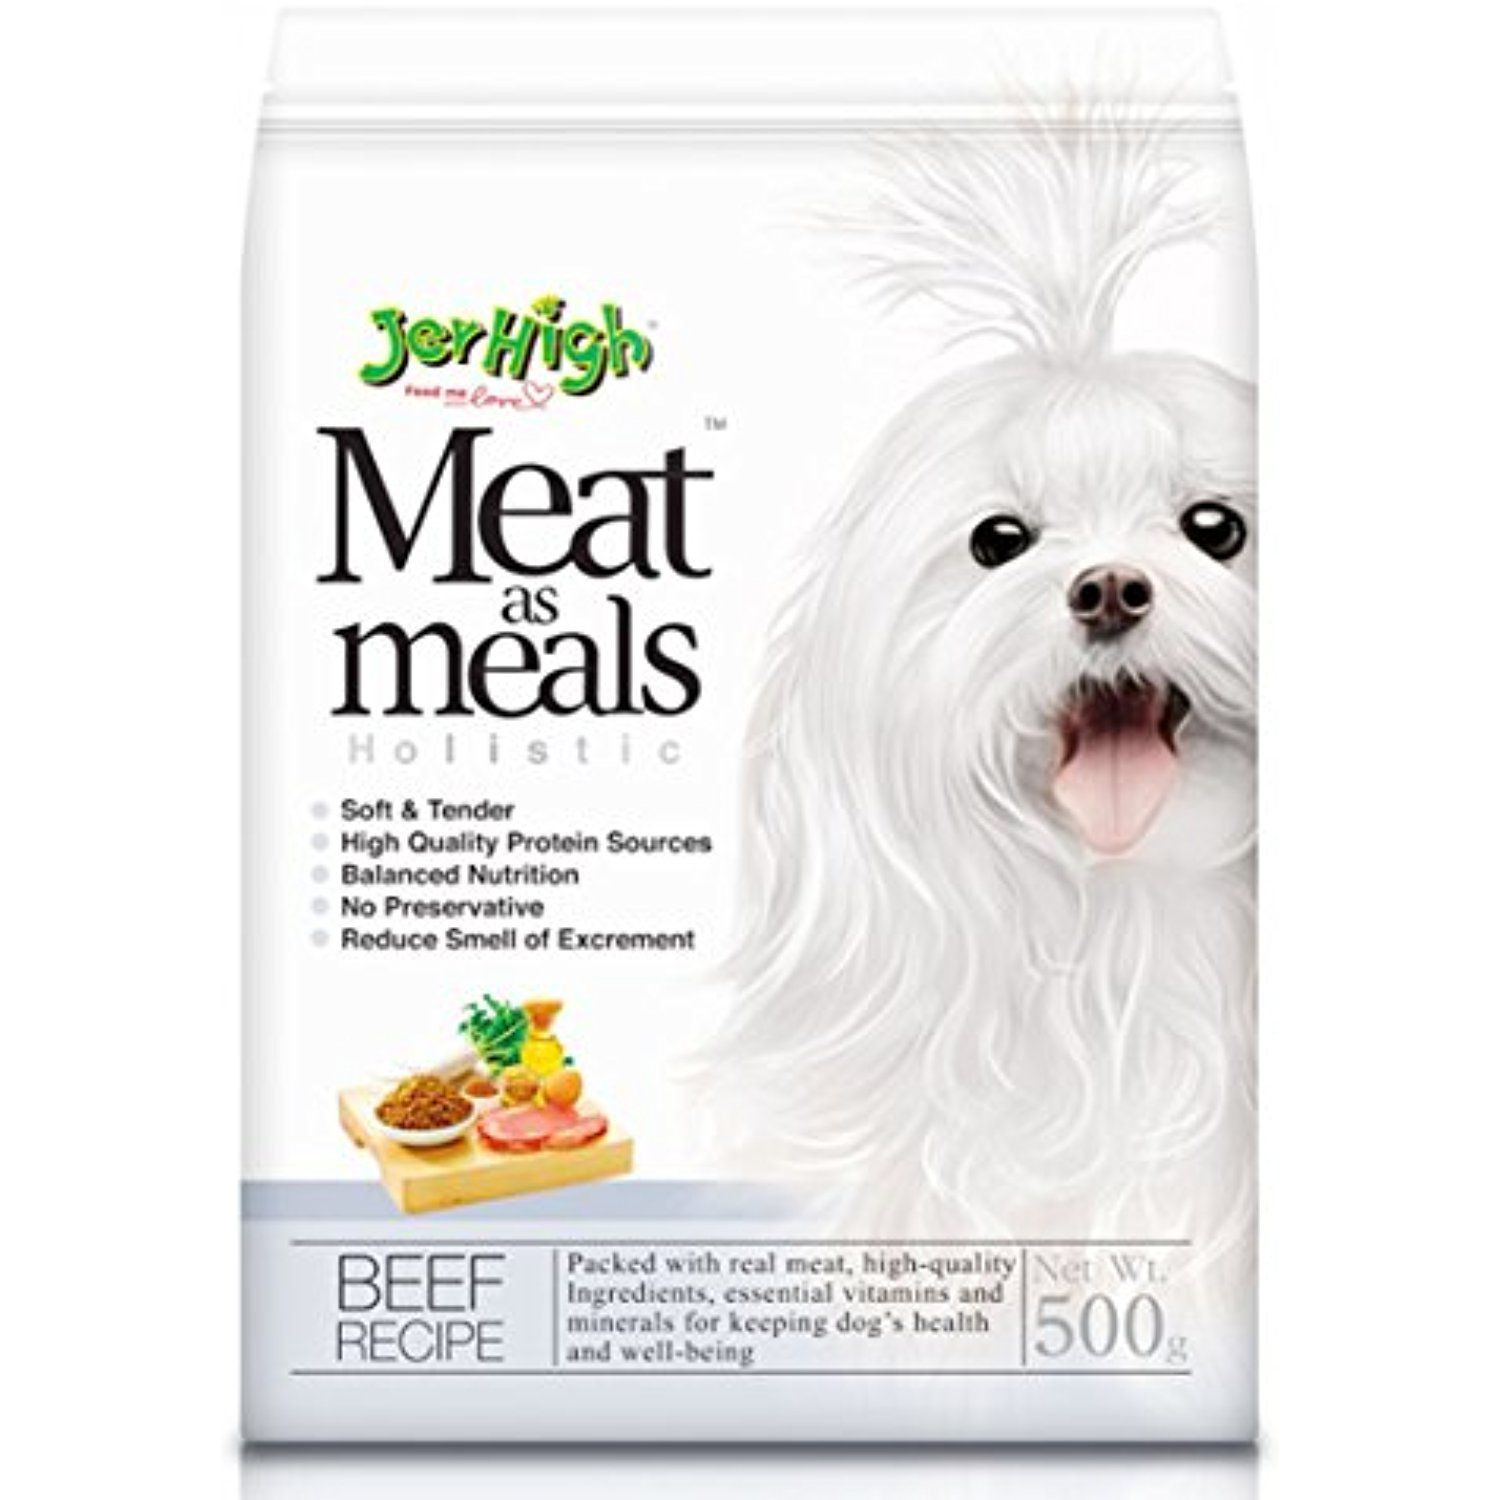 Jerhigh meat as meals holistic beef recipe 500g you